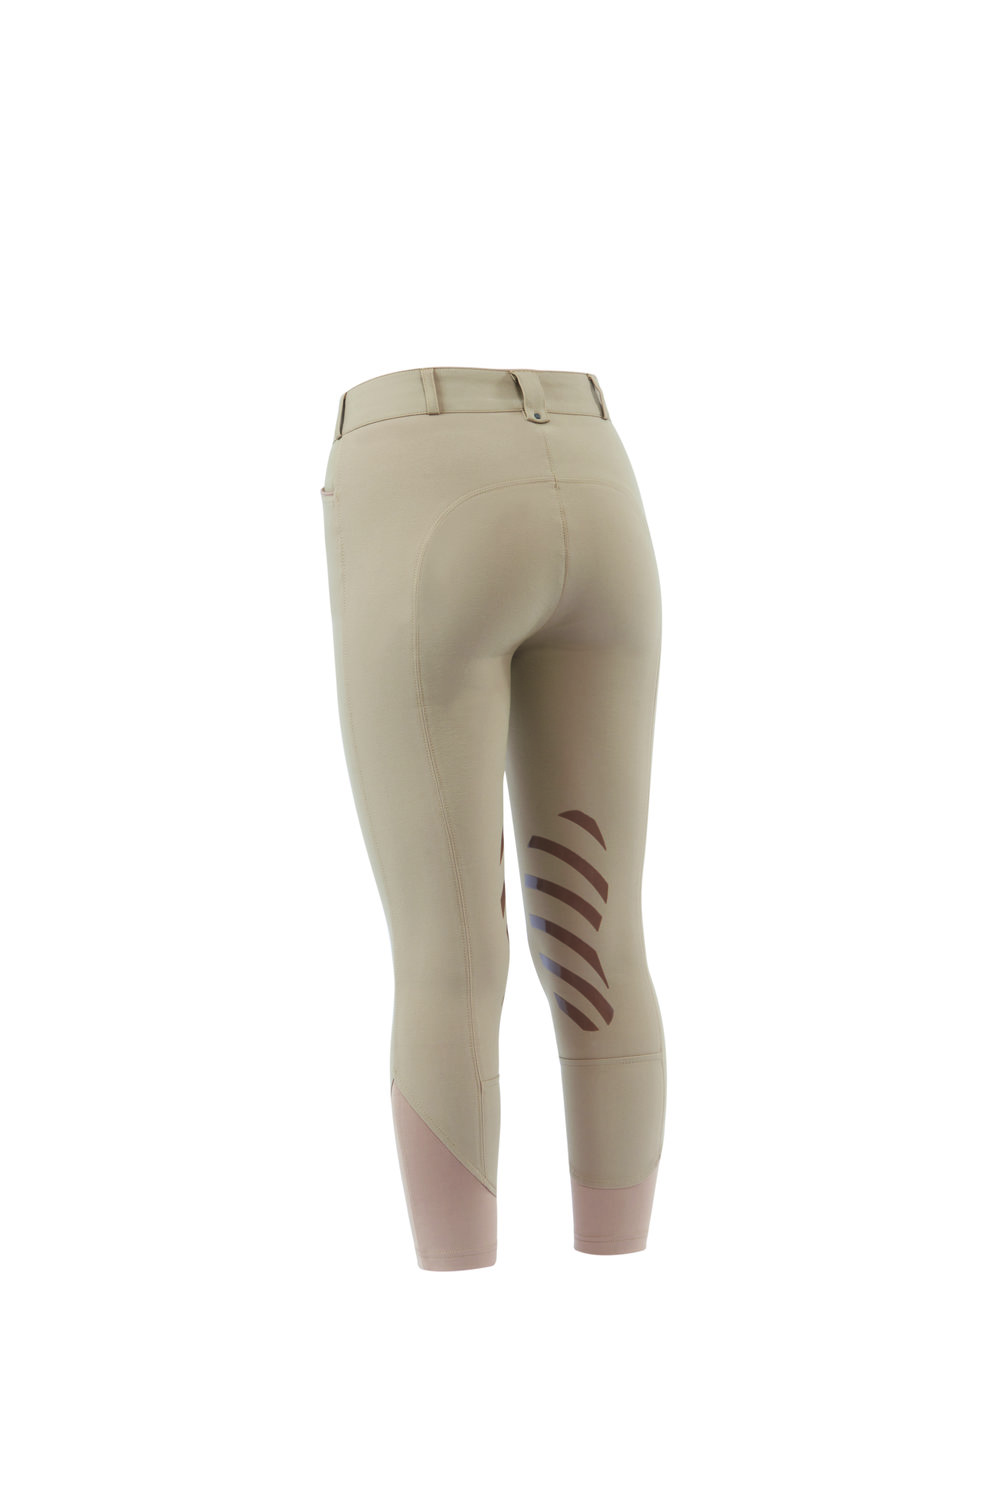 The Prime Gel Breeches come in a mid-rise fit